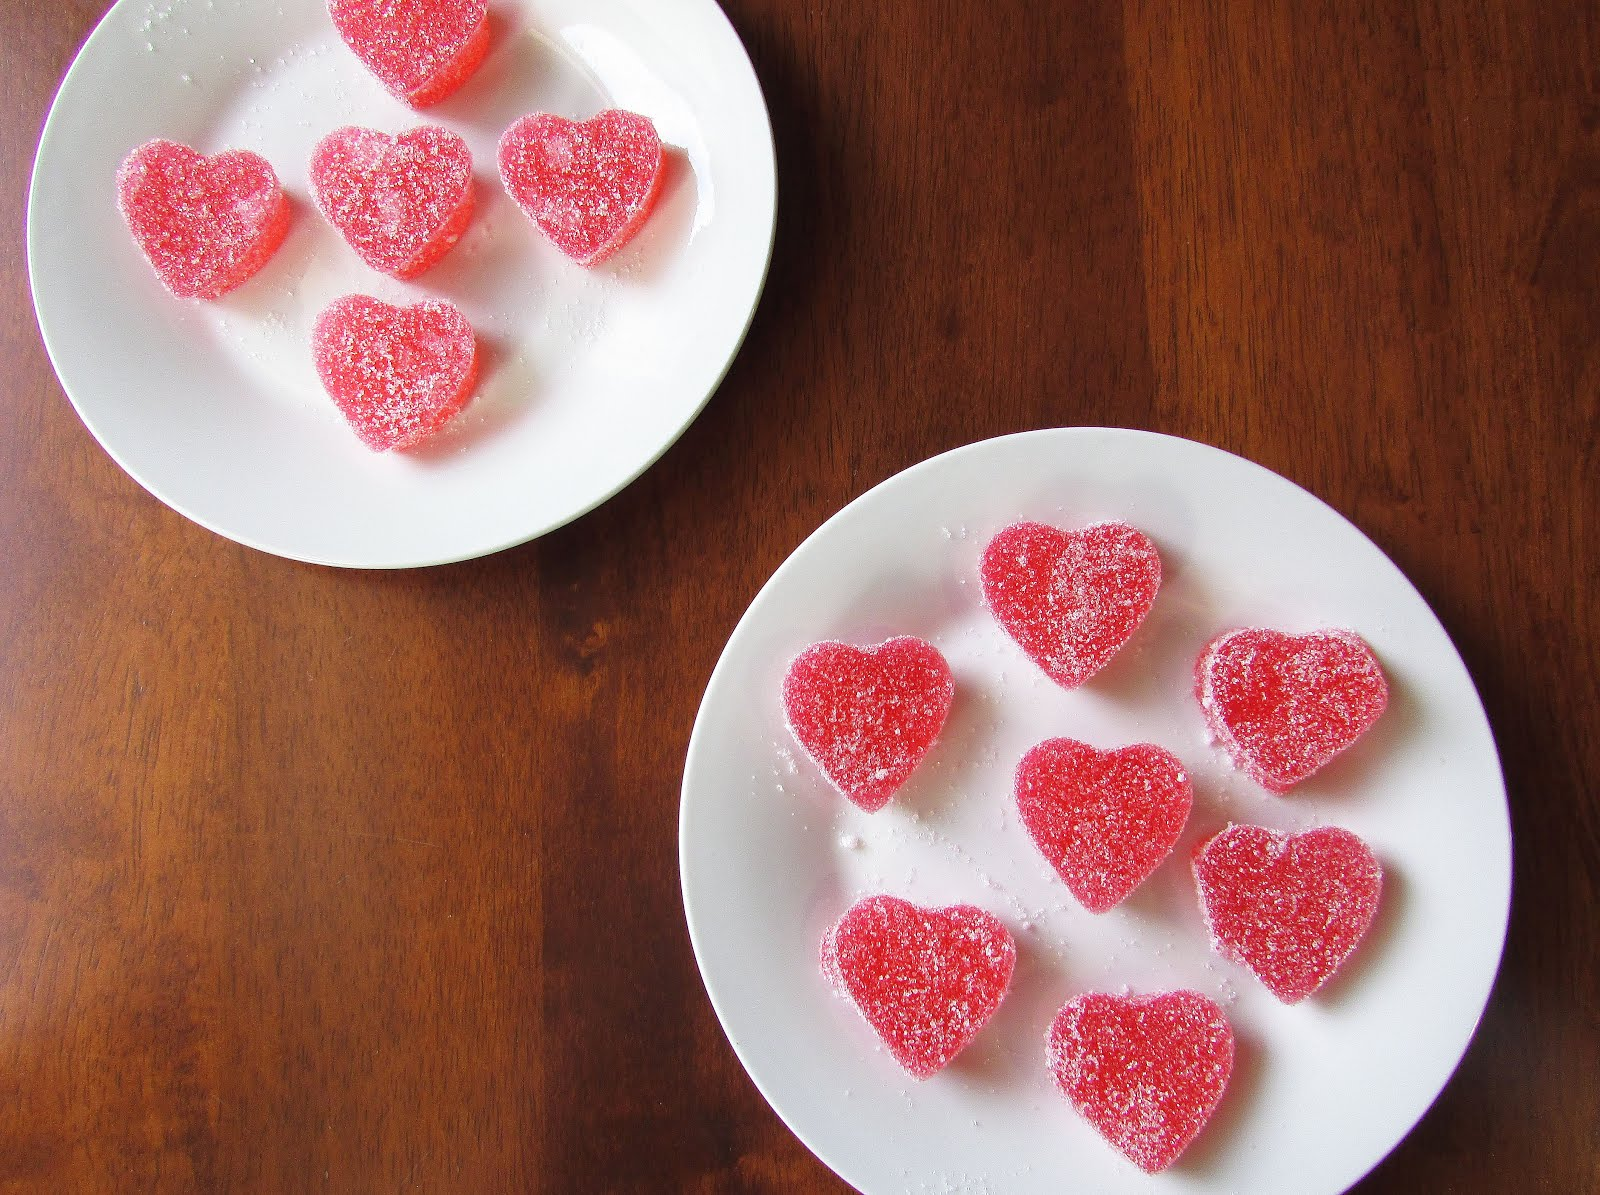 Homemade Heart Shaped Gumdrops + A Little Backstory